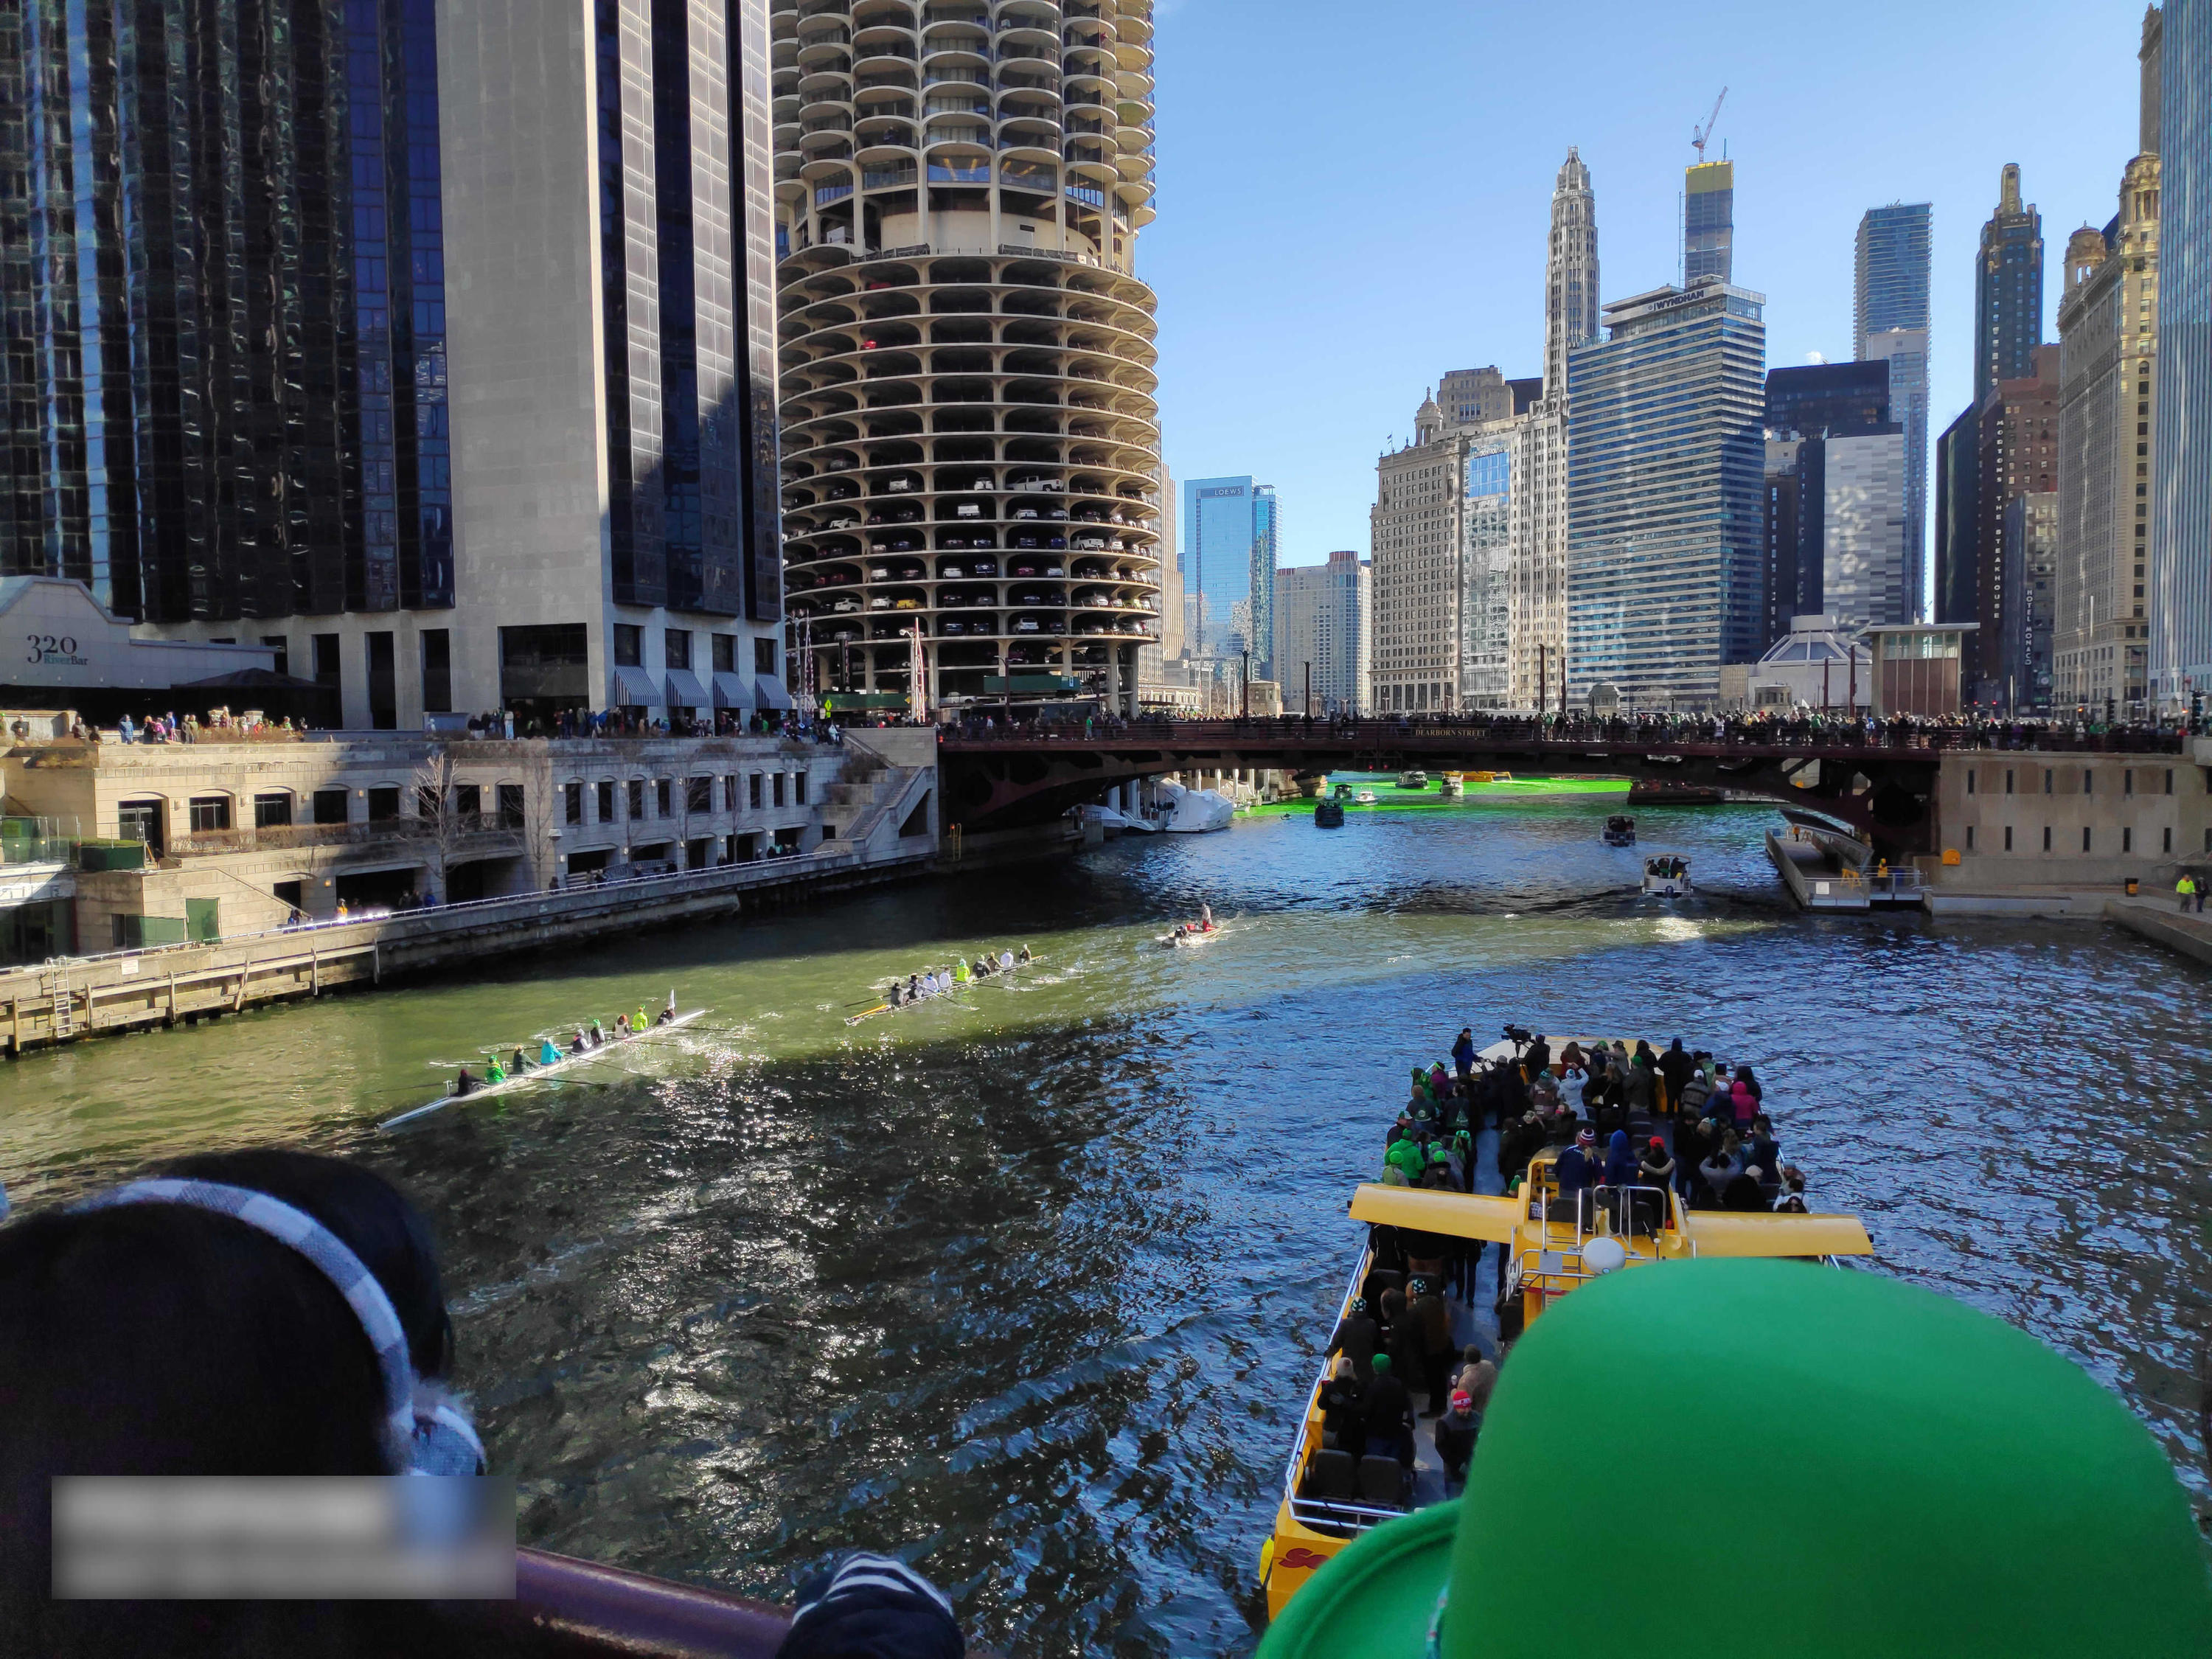 Boat cruise in Chicago